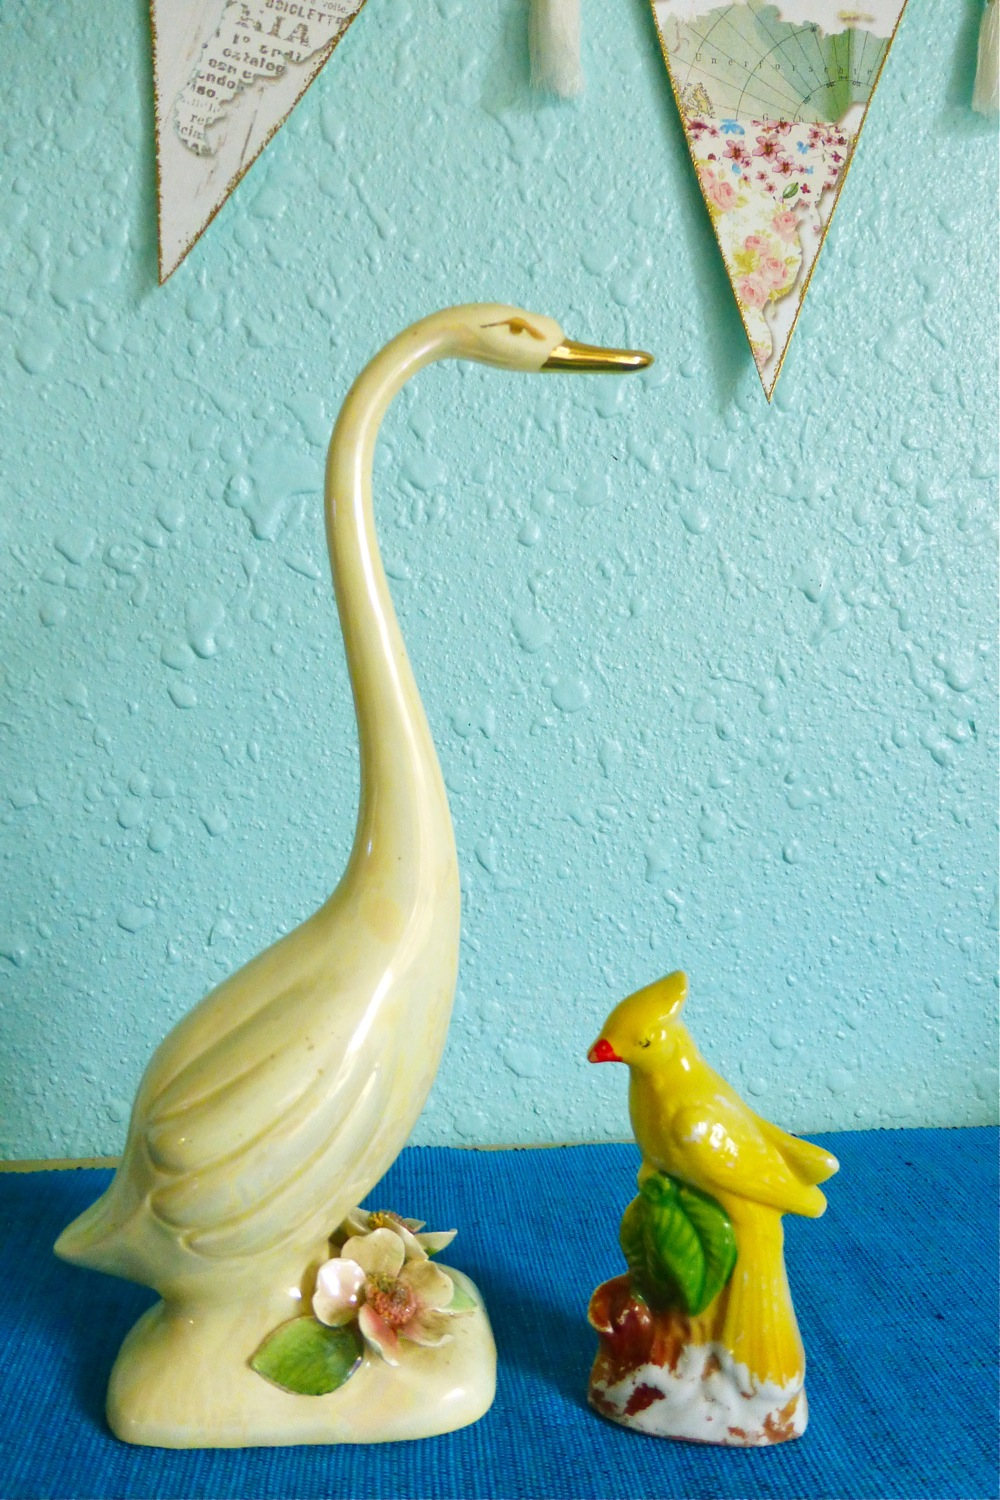 Norcrest crafted in Japan, Norcrest, REGUS. PAT. OFFICE, PR-12H, antique white tall slender bird, bird ceramic, tall white bird ceramic, bird ceramic made in Japan, made in Japan bird ceramic, Norcrest bird ceramic, Norcrest bird